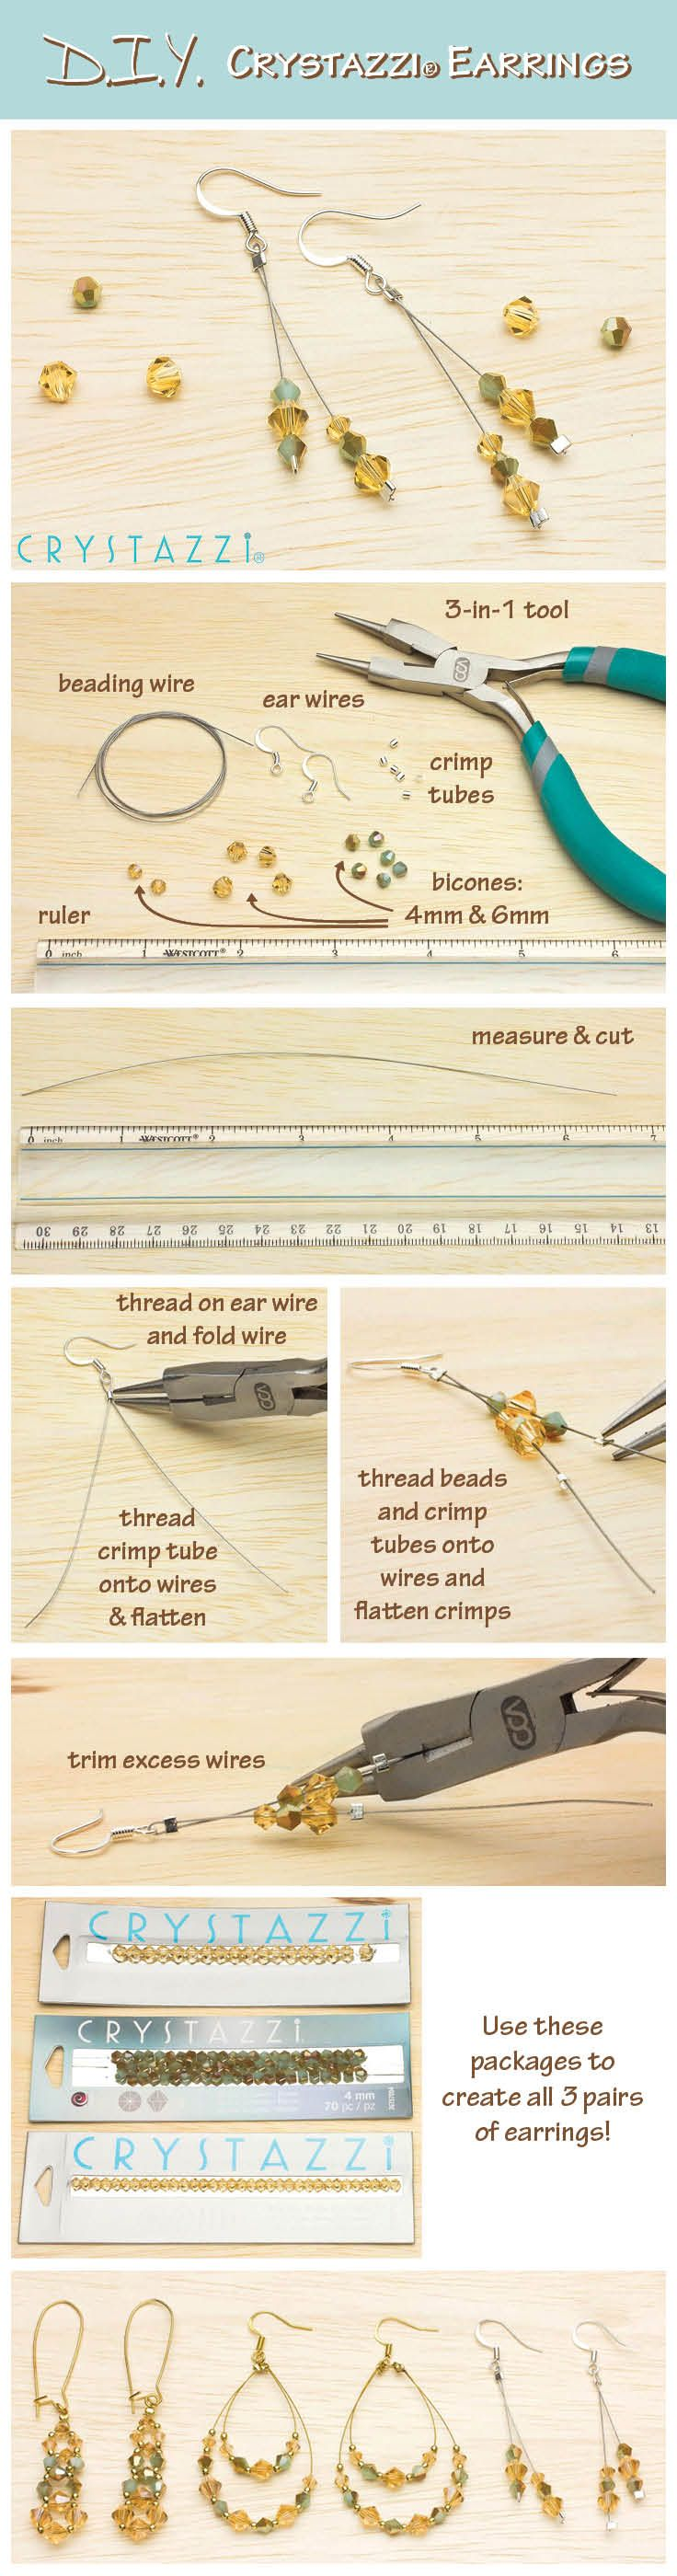 Crystazzi Earrings DIY Crystal Jewelry, DIY Crystal Jewelry - create earrings in three styles to coordinate with any outfit.